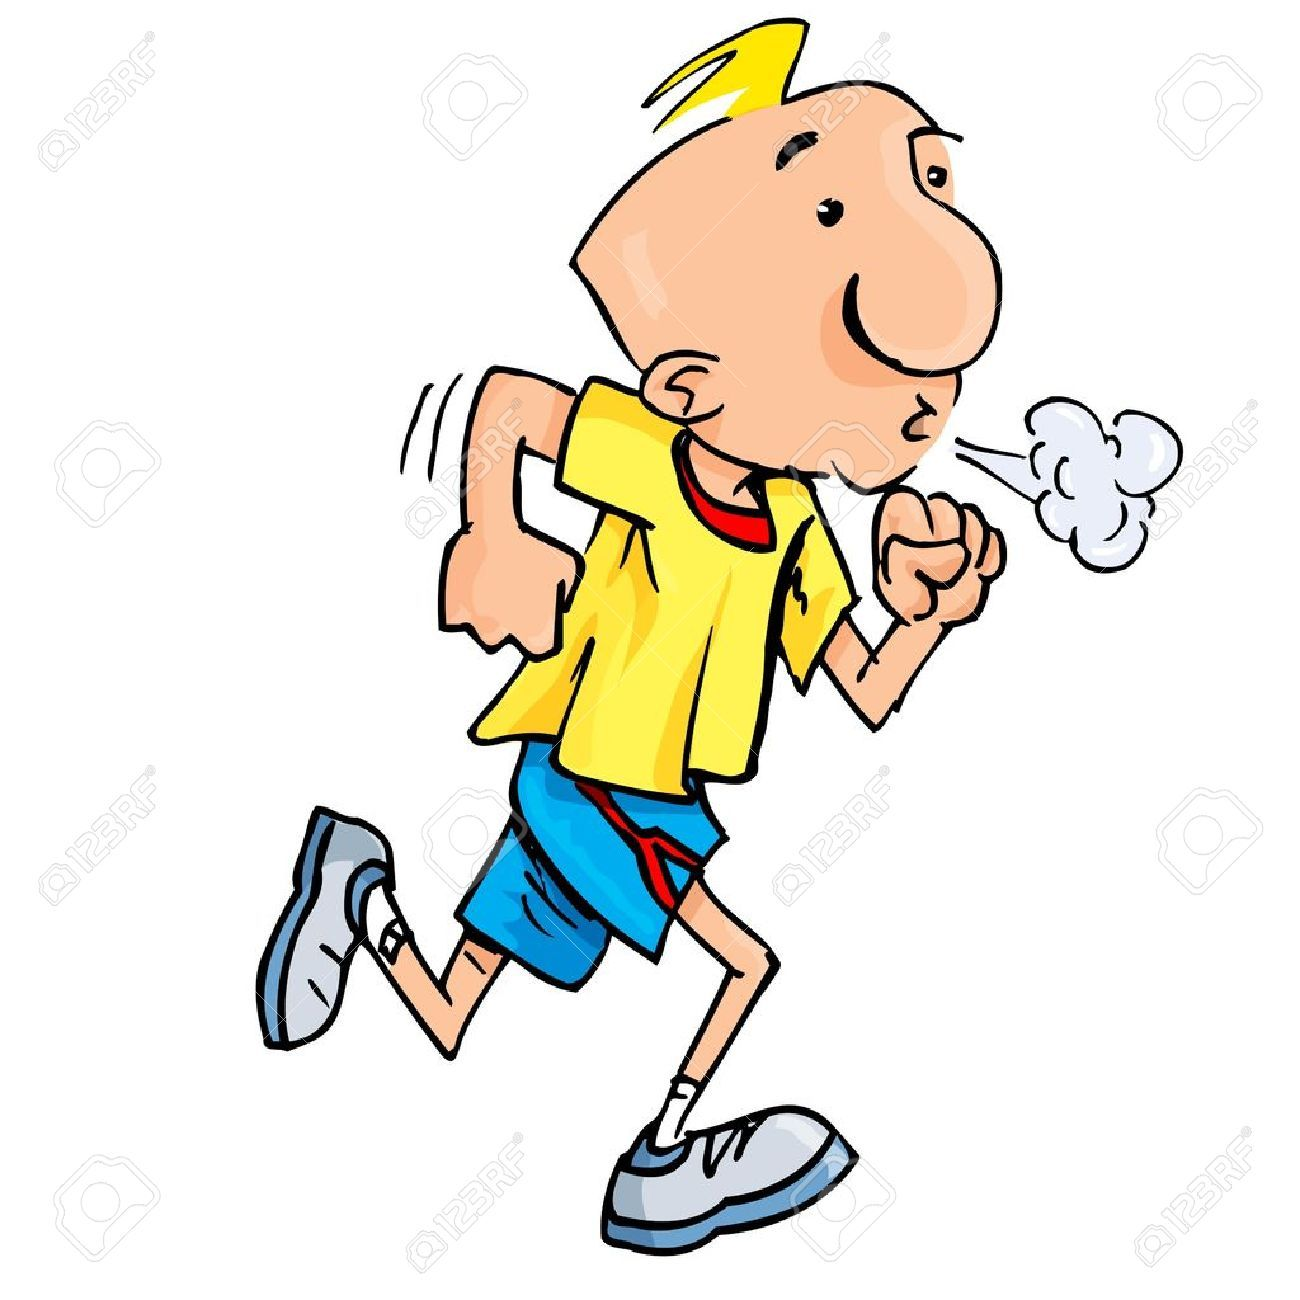 Cartoon jogger clipart 1 » Clipart Portal.